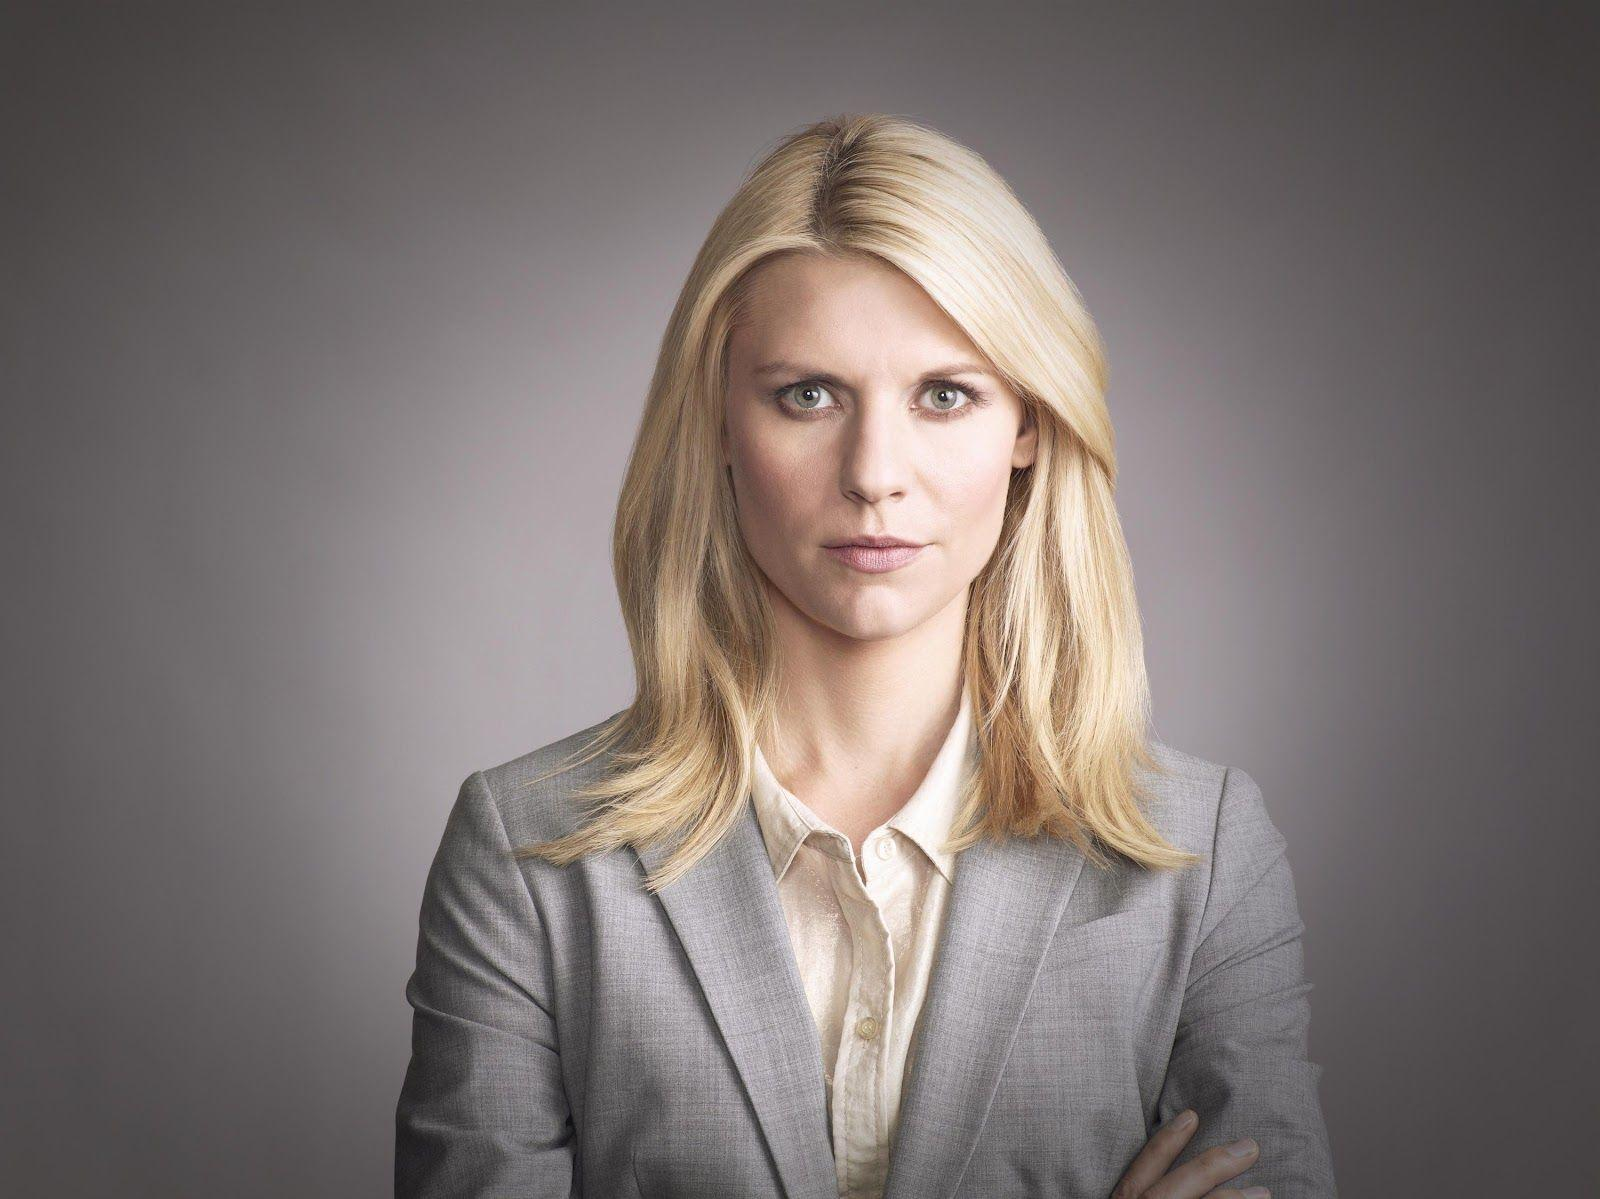 Claire Danes as Carrie Mathison. Love her!!